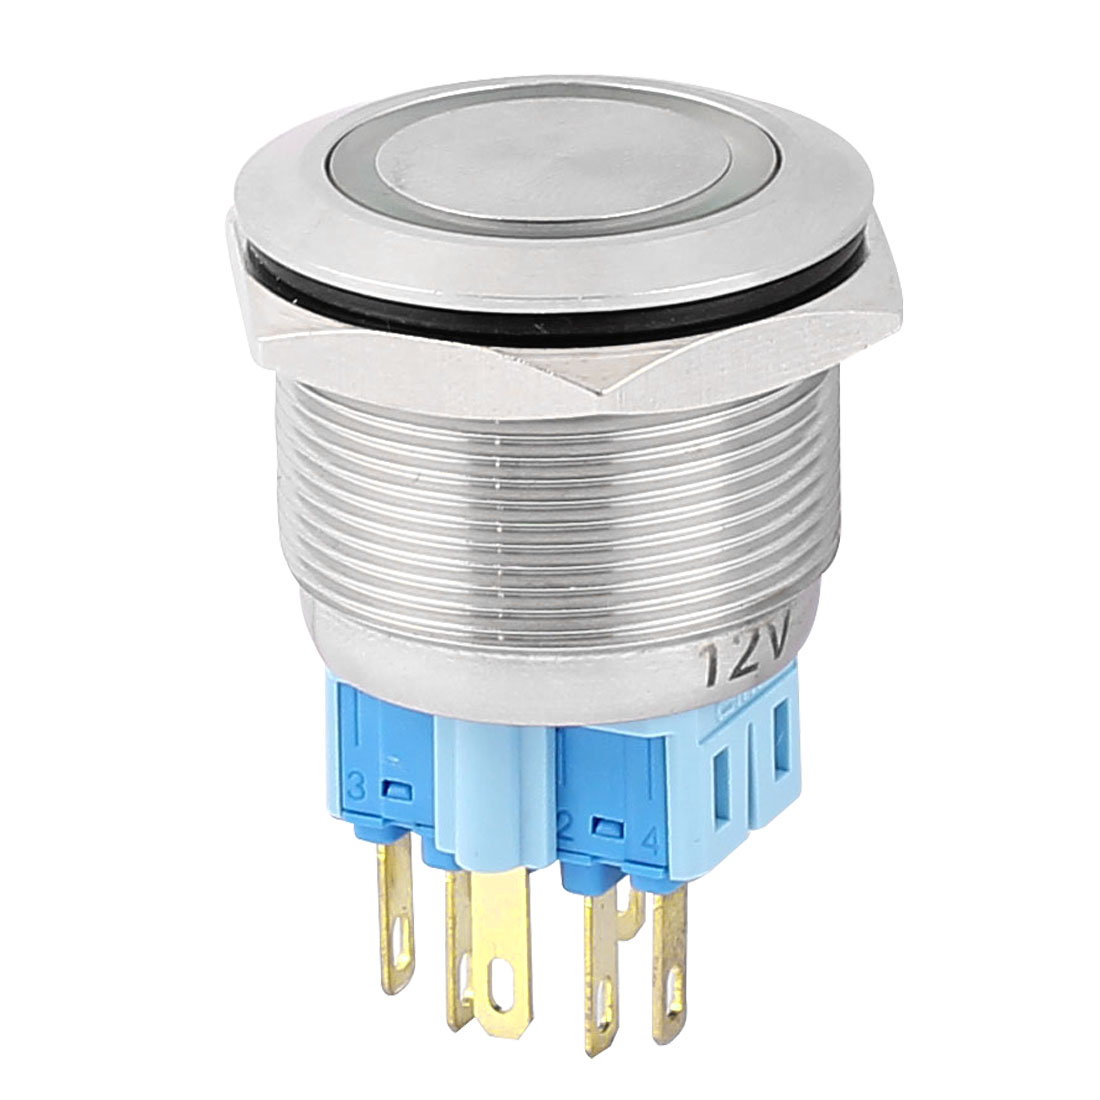 DC 12V 20mm Green LED Light 25mm Mounted Thread 6 Pins DPST NO/NC Momentary Push Button Switch